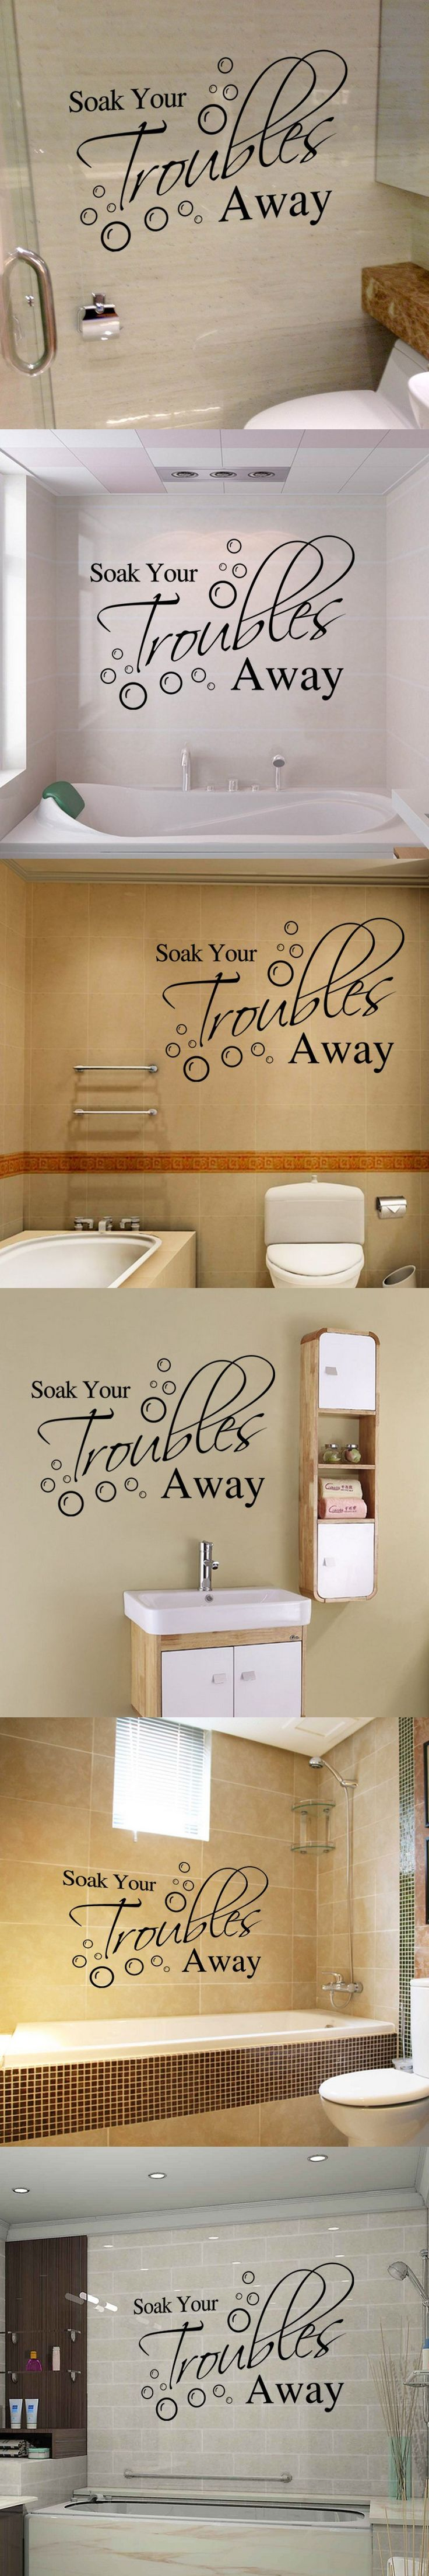 Wall Writing Decor 17 Best Ideas About Bathroom Wall Decals On Pinterest Bathroom